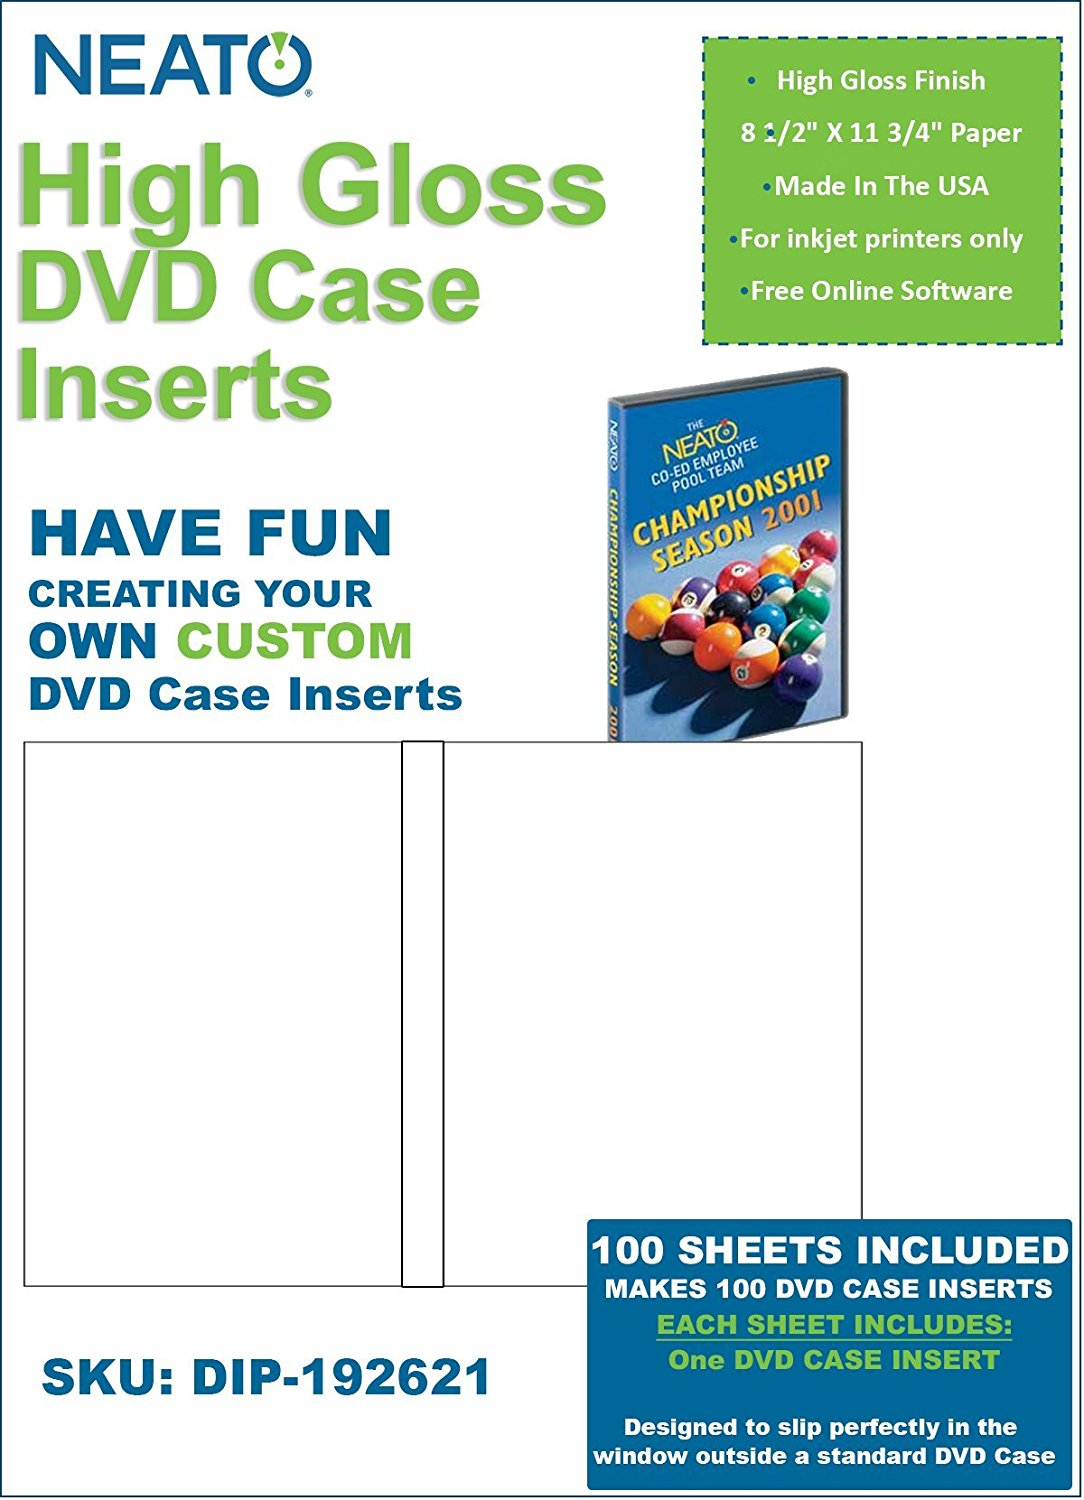 Neato High Gloss DVD Case Inserts – 100 Sheets to make 100 DVD Case Inserts